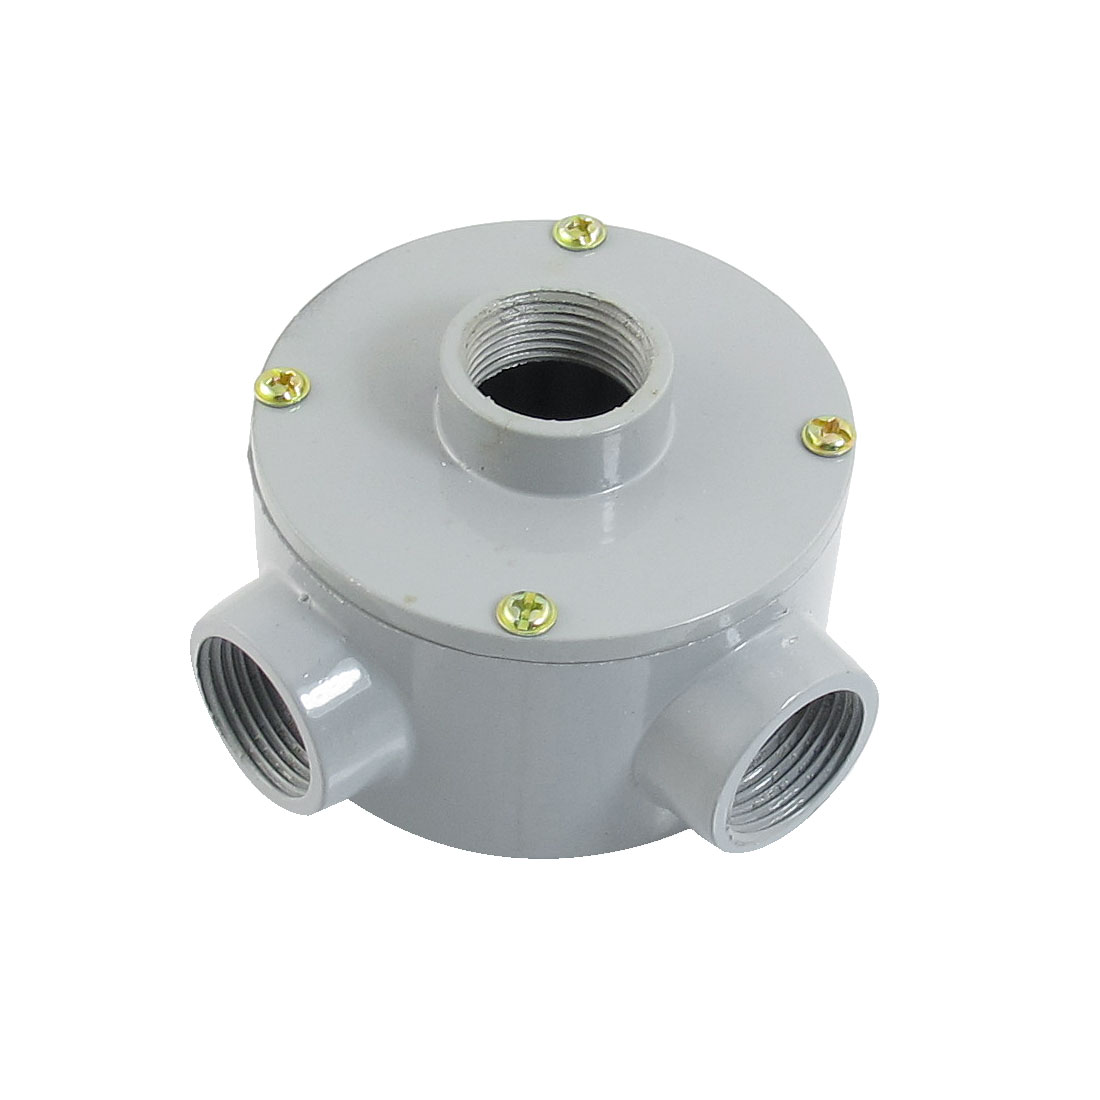 "G3/4"" Thread Three Holes Conduit Wiring Round Metal Junction Box"